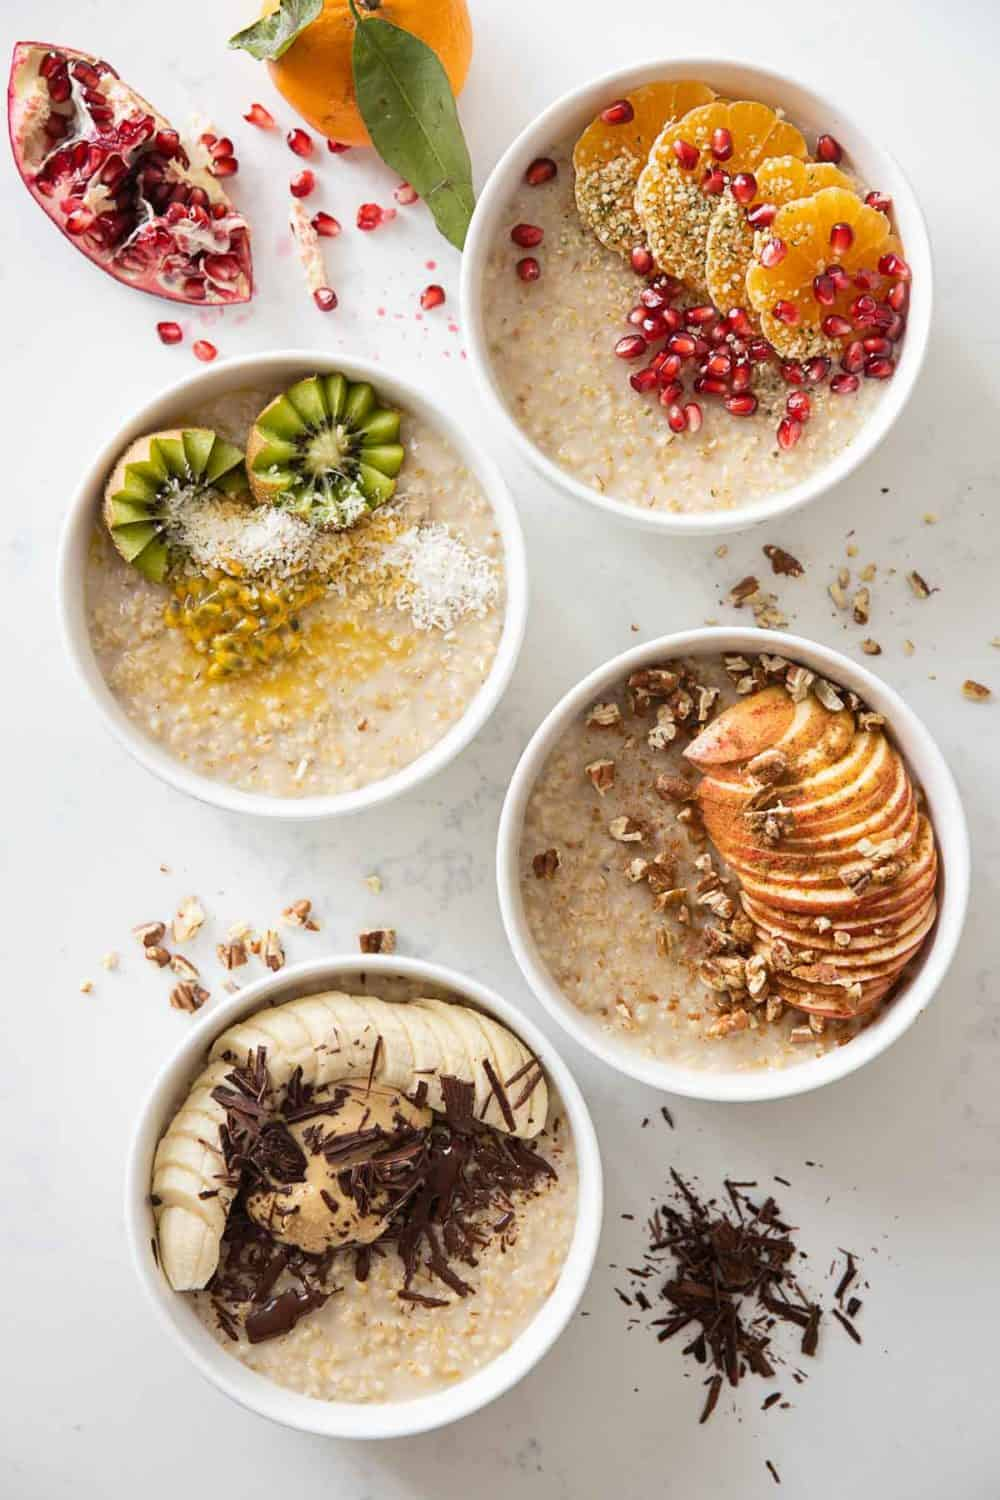 4 bowls of creamy steel cut oats topped with fall/winter fruit, nuts, and seeds.